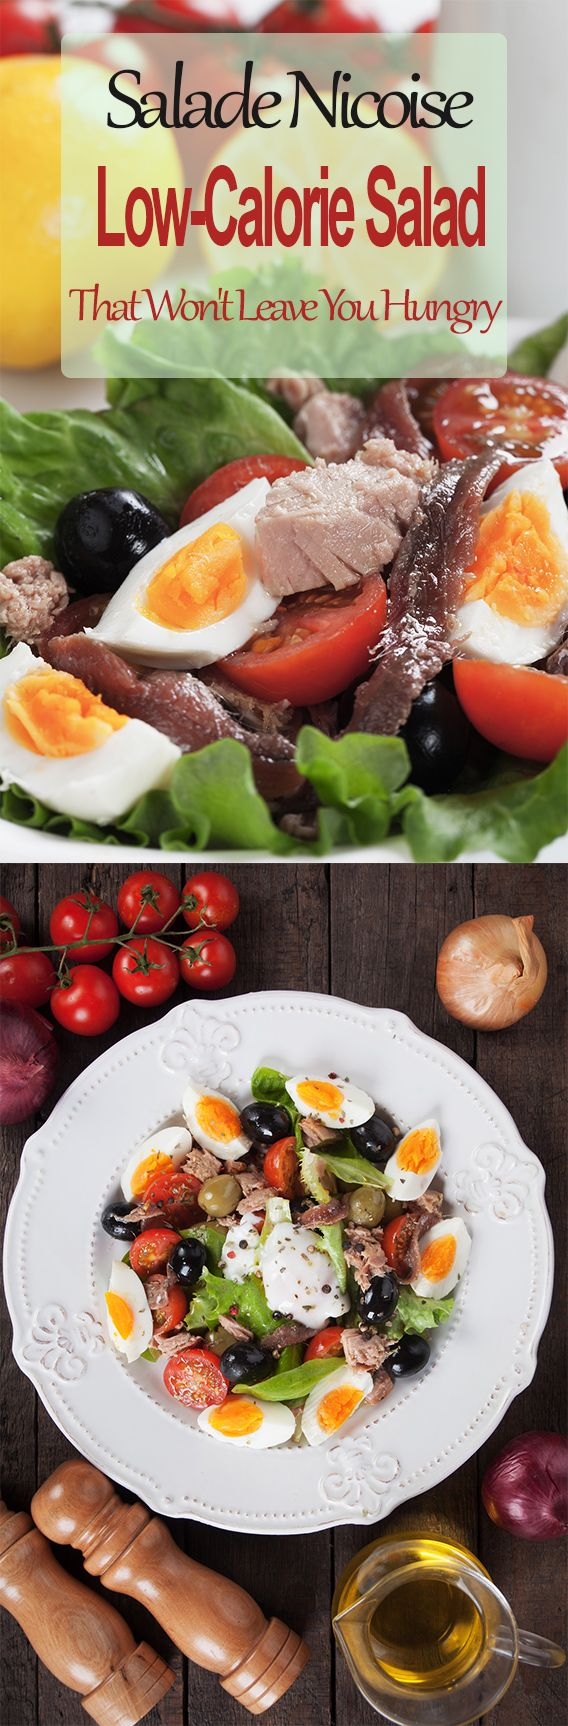 Low-Calorie Salad That Won't Leave You Hungry – Fitness Diet Recipes